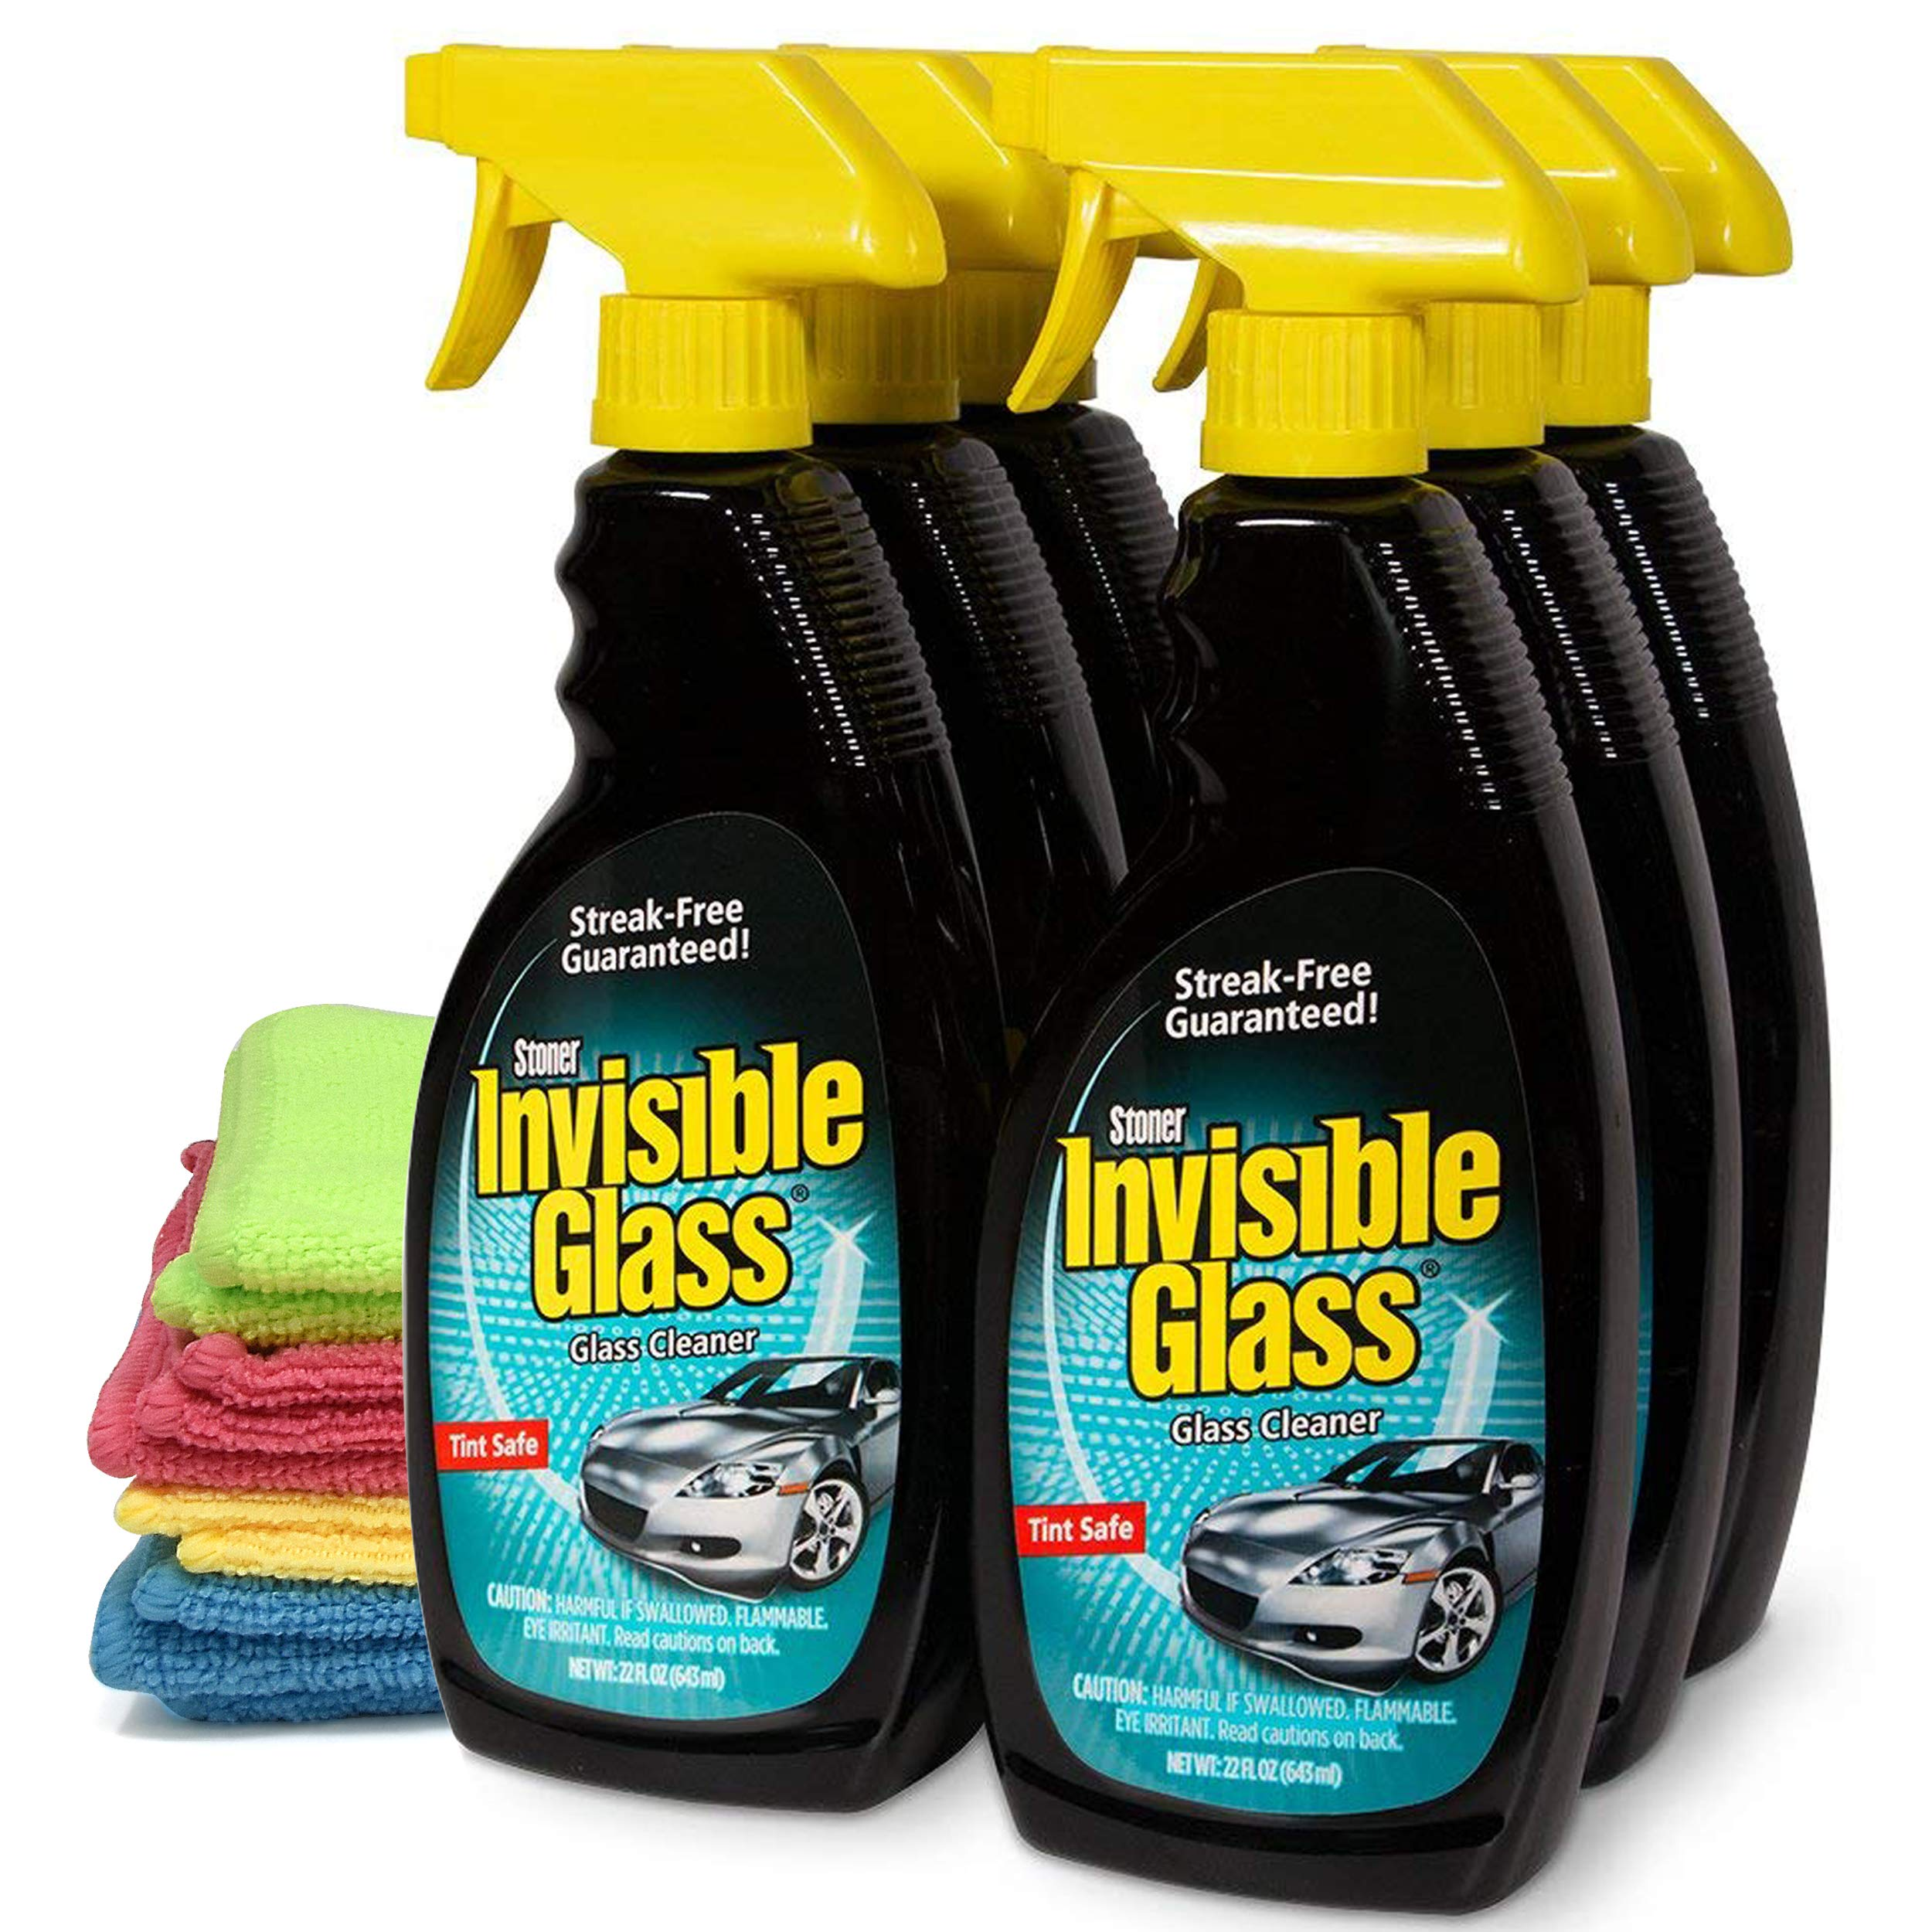 Invisible Glass Cleaner and Window Spray, Streak Free Shine for Auto, Film Free Glass Cleaner Safe for Windshield, Tinted and Non Tinted Windows-6 Pack, and 4 UBEN Microfiber 12x12 Cleaning Cloths